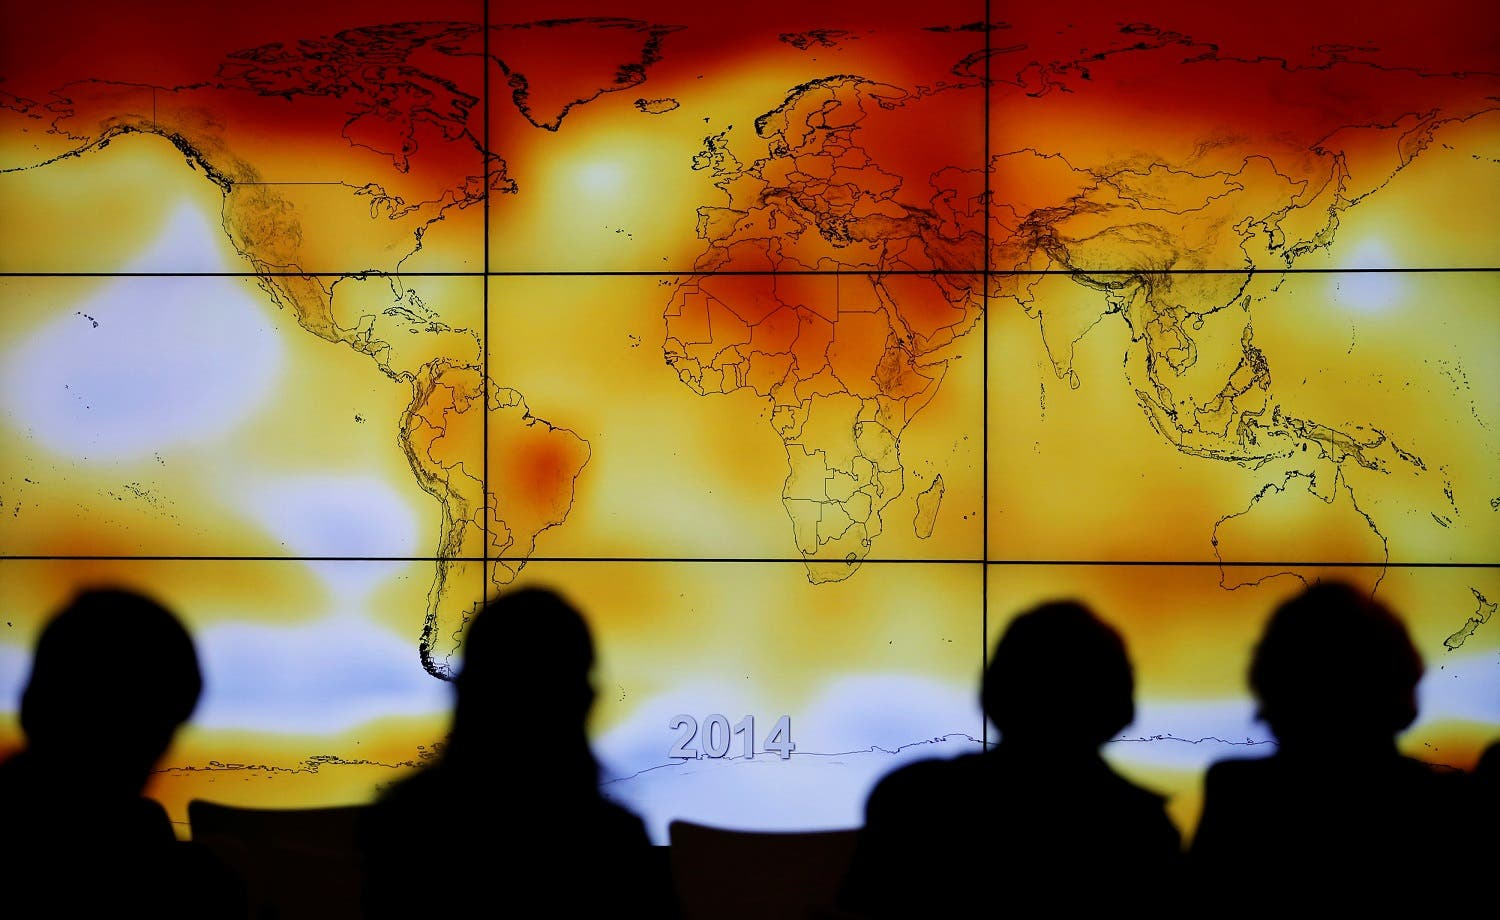 Participants are seen in silhouette as they look at a screen showing a world map with climate anomalies during the World Climate Change Conference 2015 (COP21) in Paris. (File photo: Reuters)